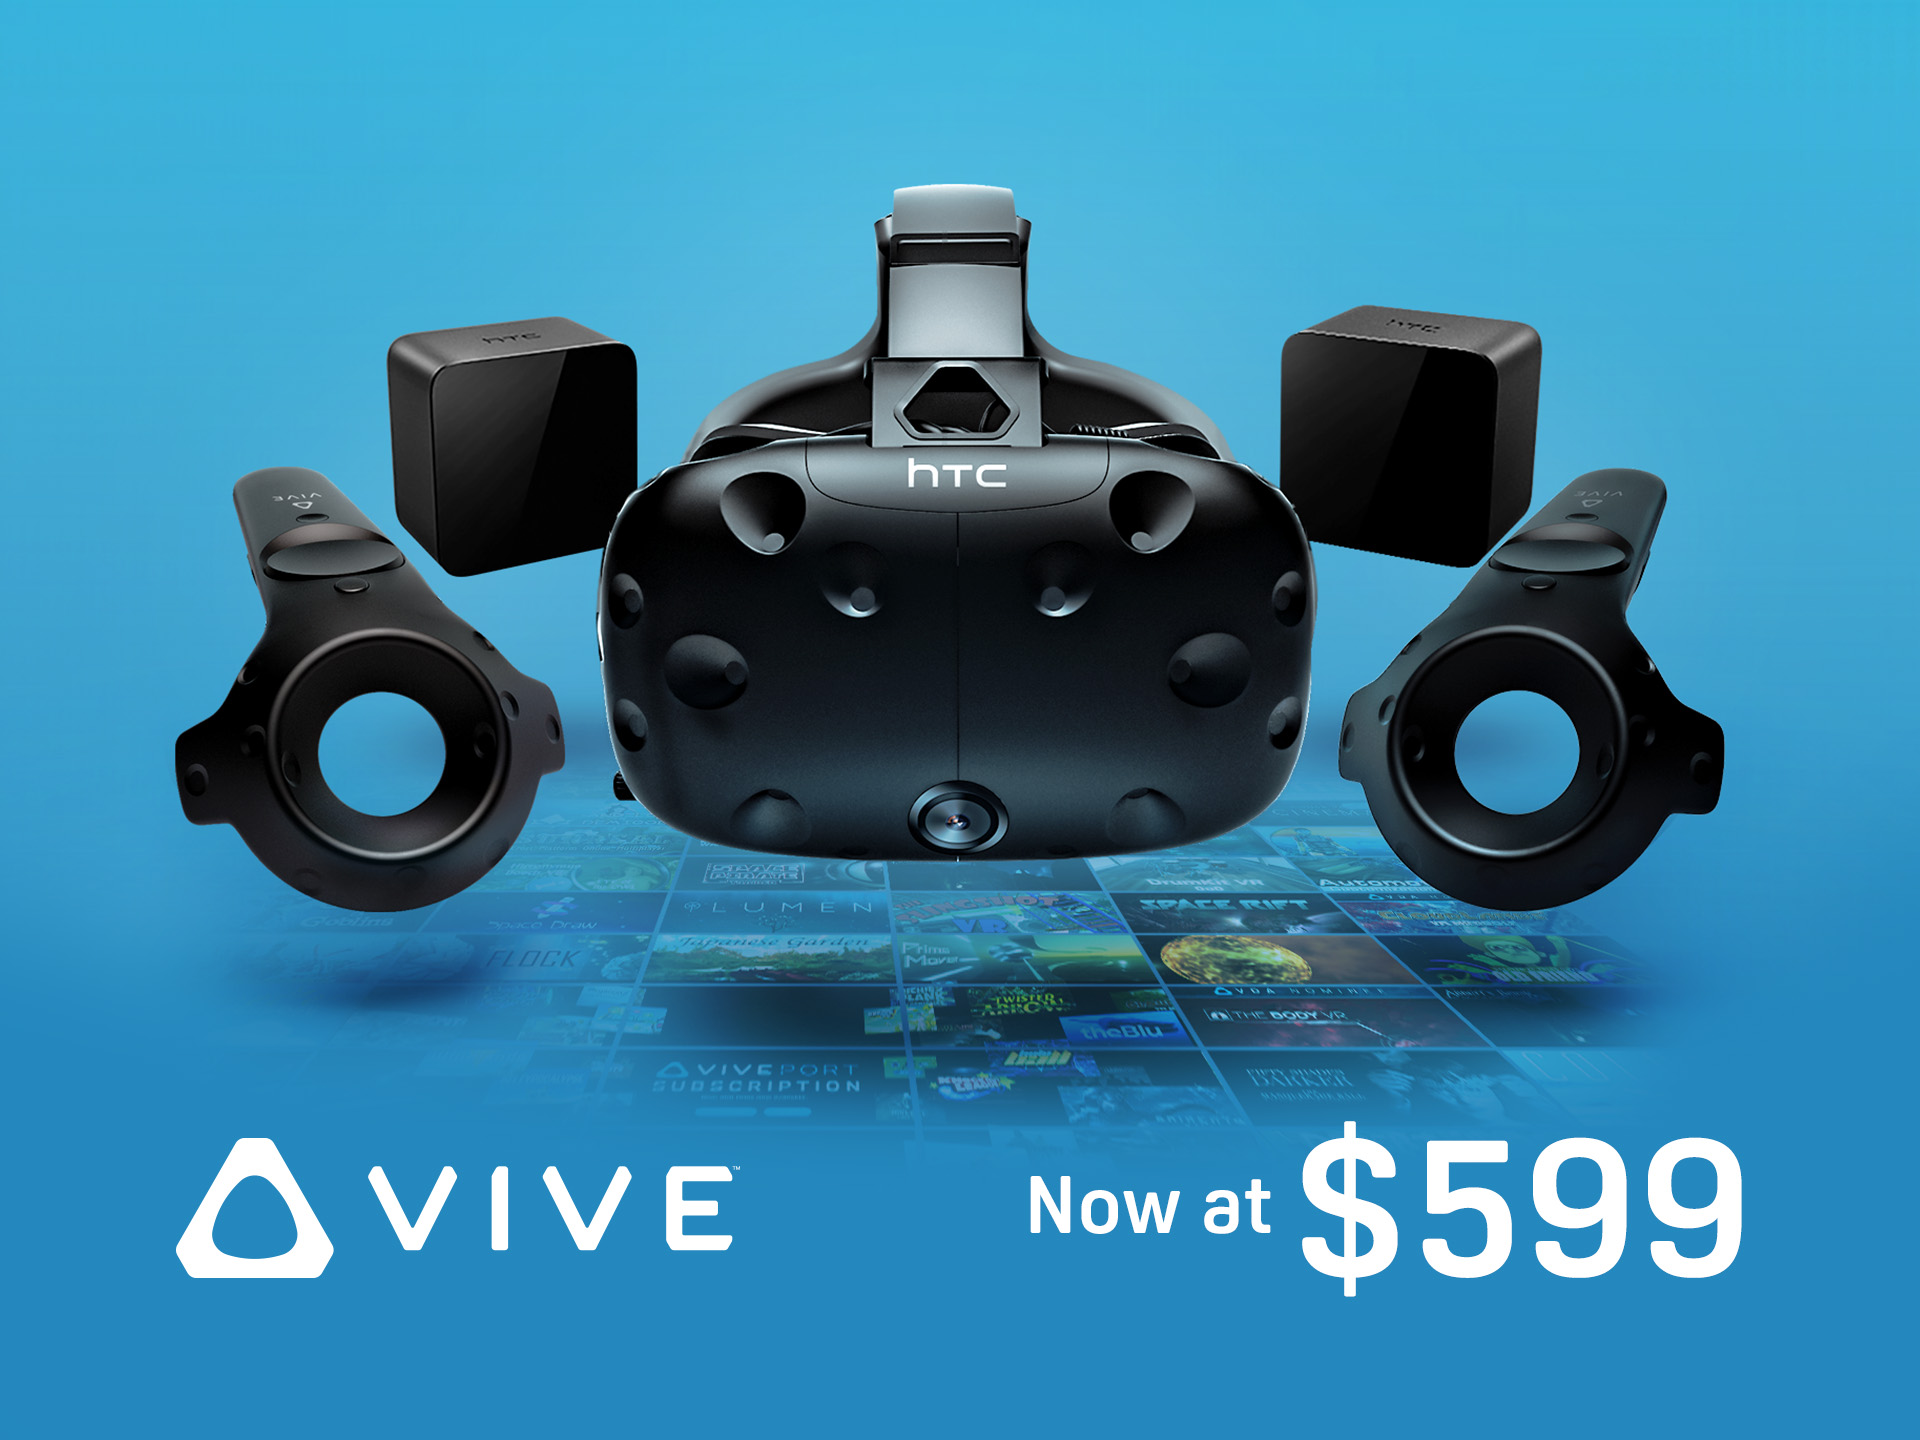 HTC Vive price drop art- now available for $599